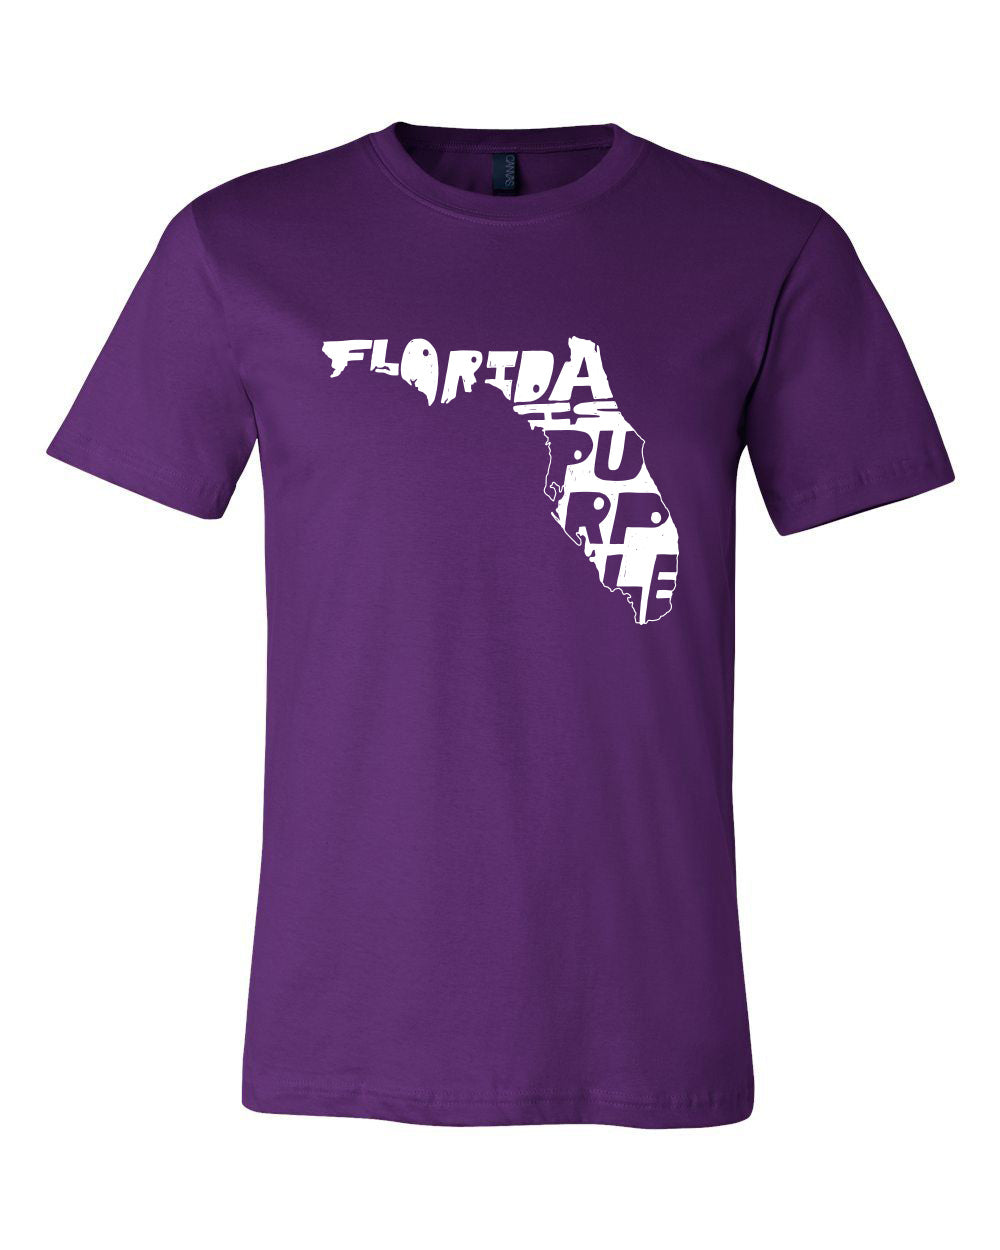 Florida Is Purple Tee